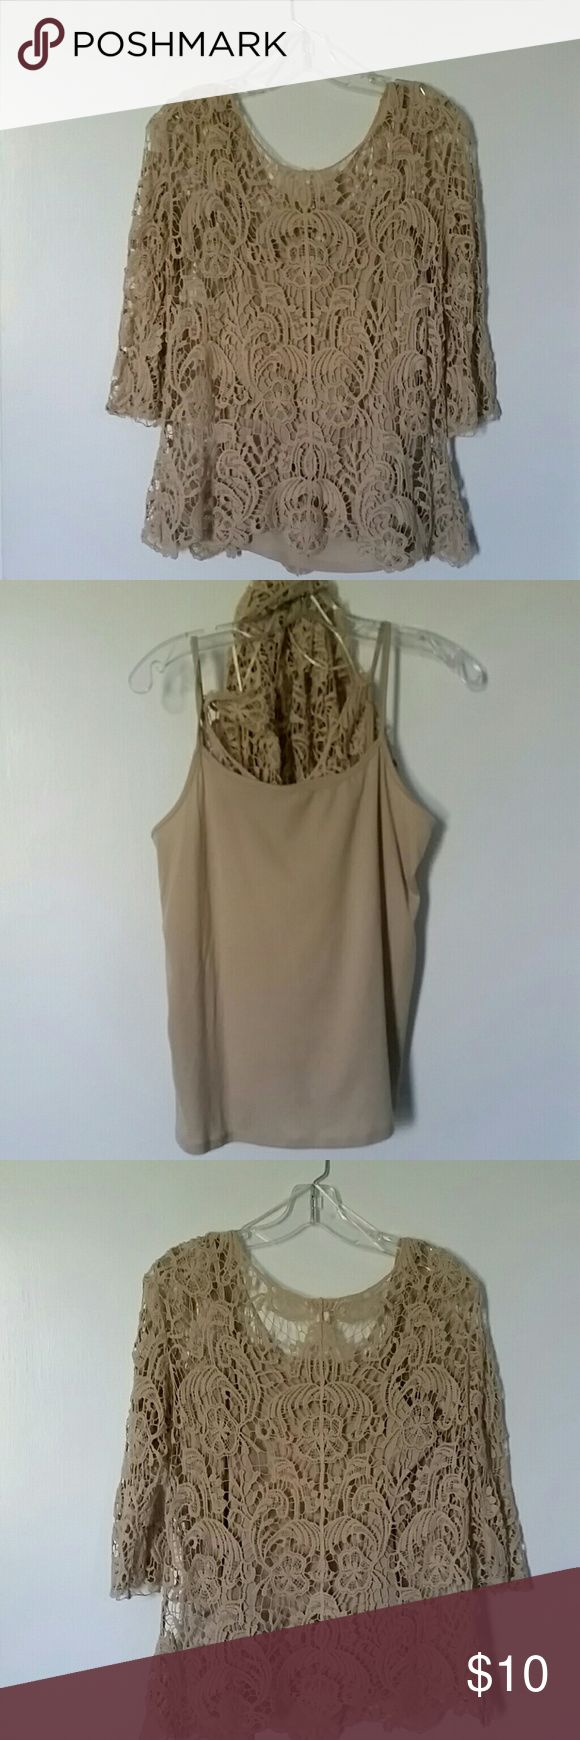 Neutral lace blouse w/ attached cami This garment is like new, been worn a few times for a couple of hours. It is midi sleeved, with neutral cami included as part of the garment.  Lace 100% cotton, cami 100%polyester.  Can be worn dressy or casual. Tops Blouses